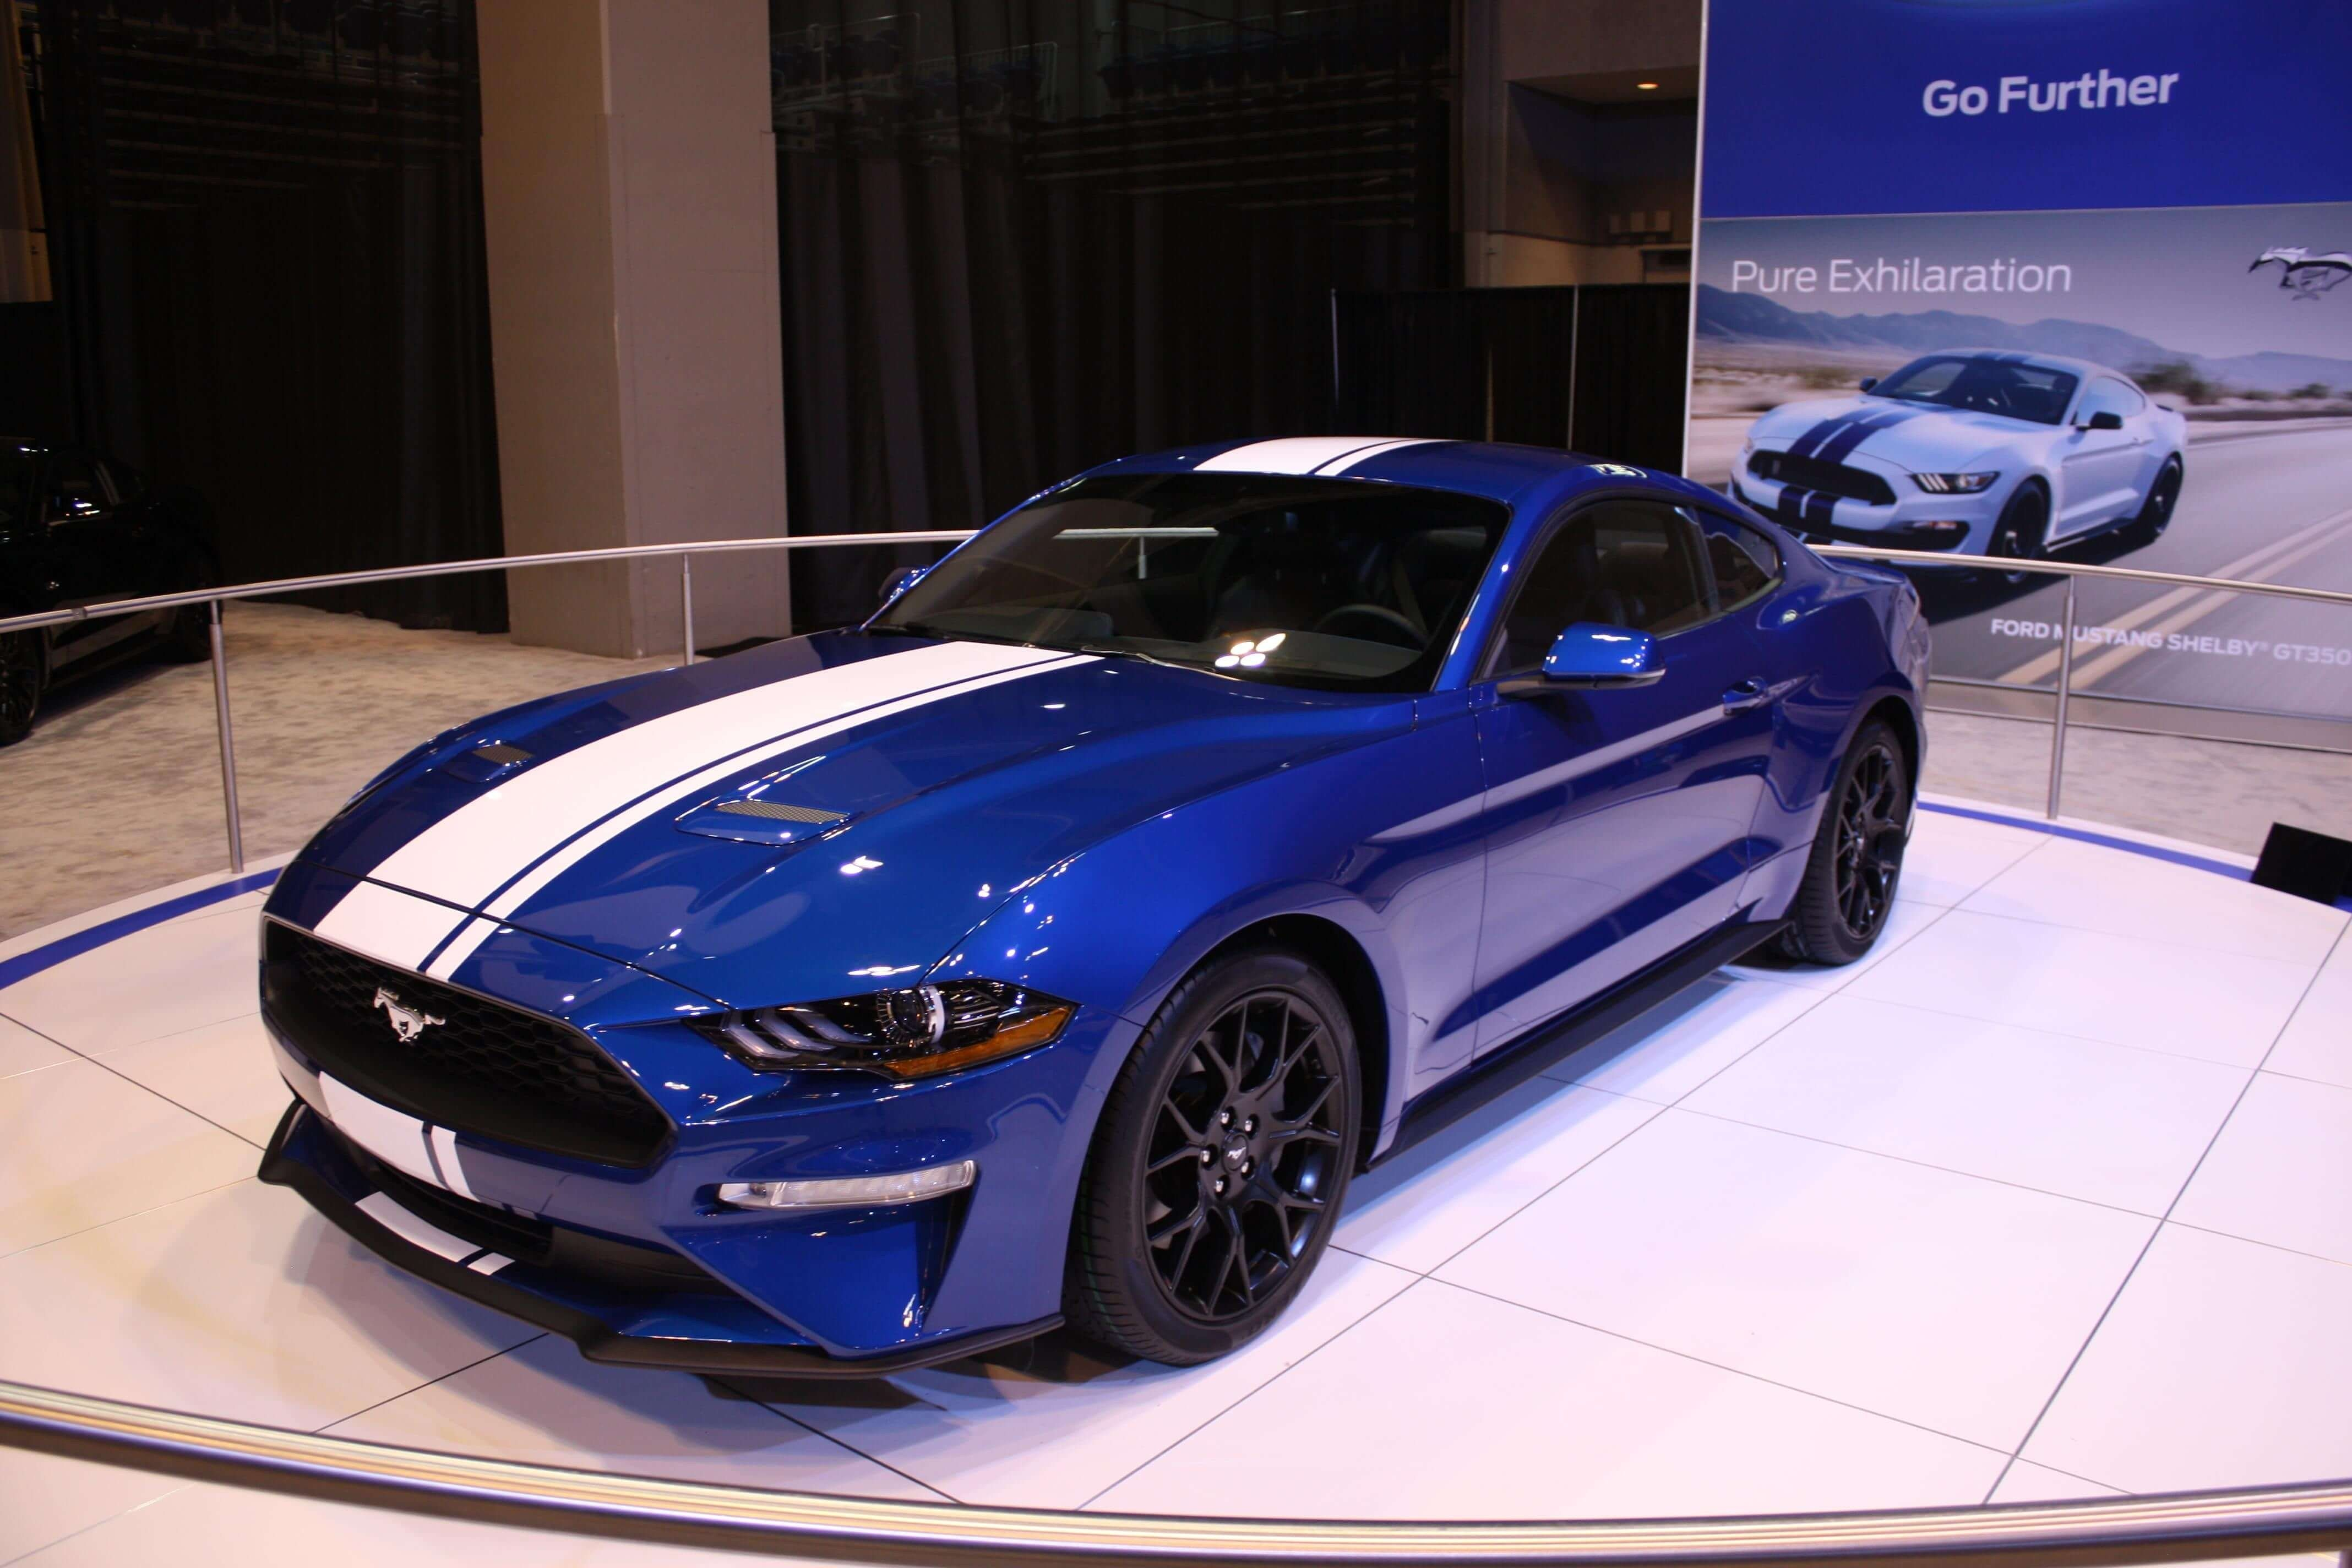 Ford Mustang Gt500 Front View 2019 2020 Spy Shootcars On Review Ford Mustang Gt500 Shelby Gt350r Mustang